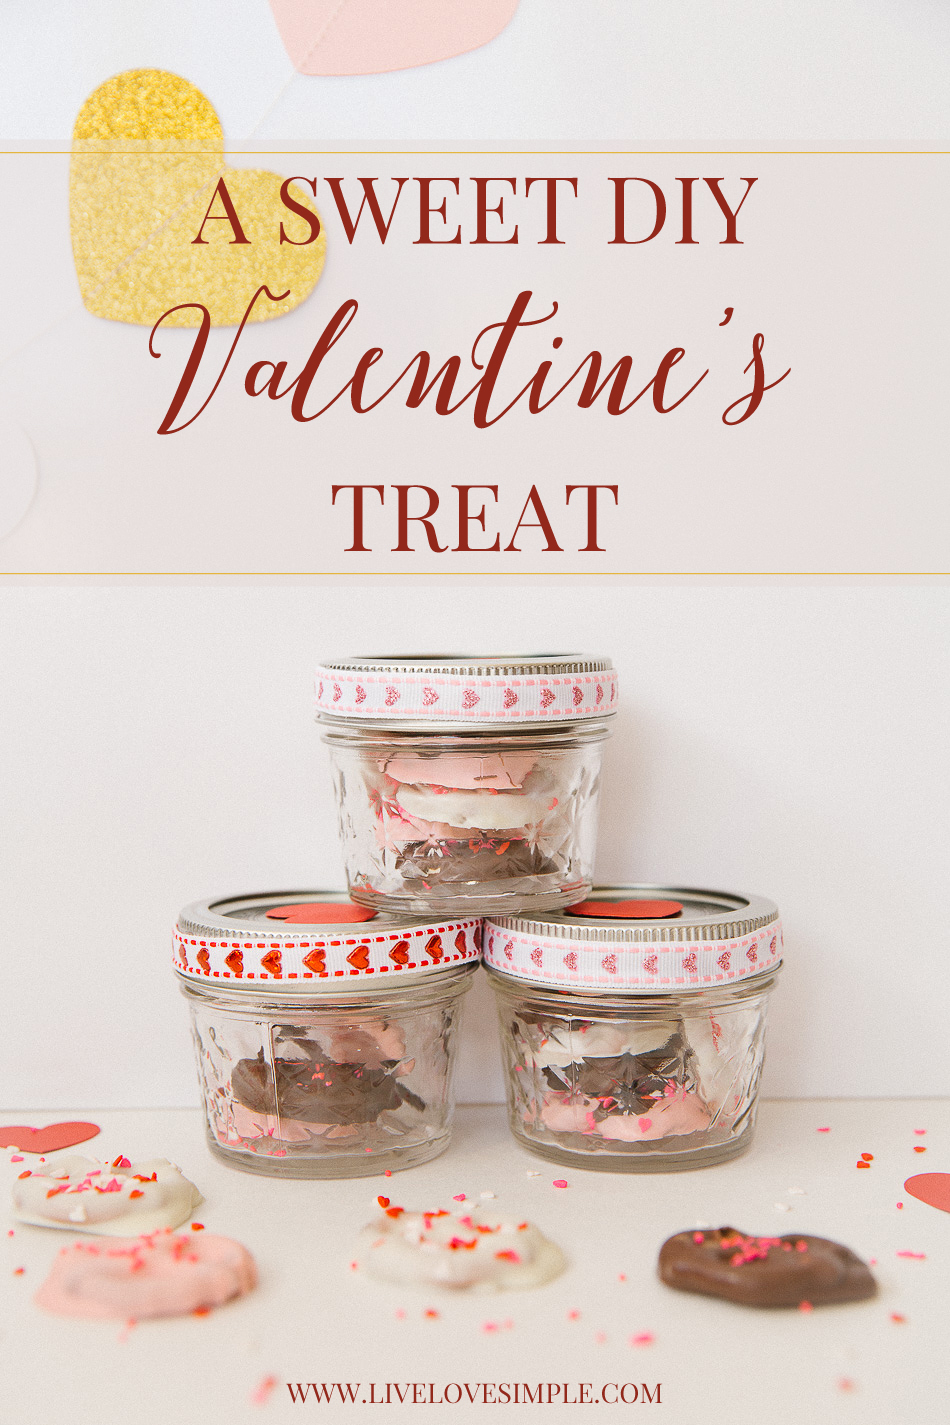 Valentine's DIY // livelovesimple.com